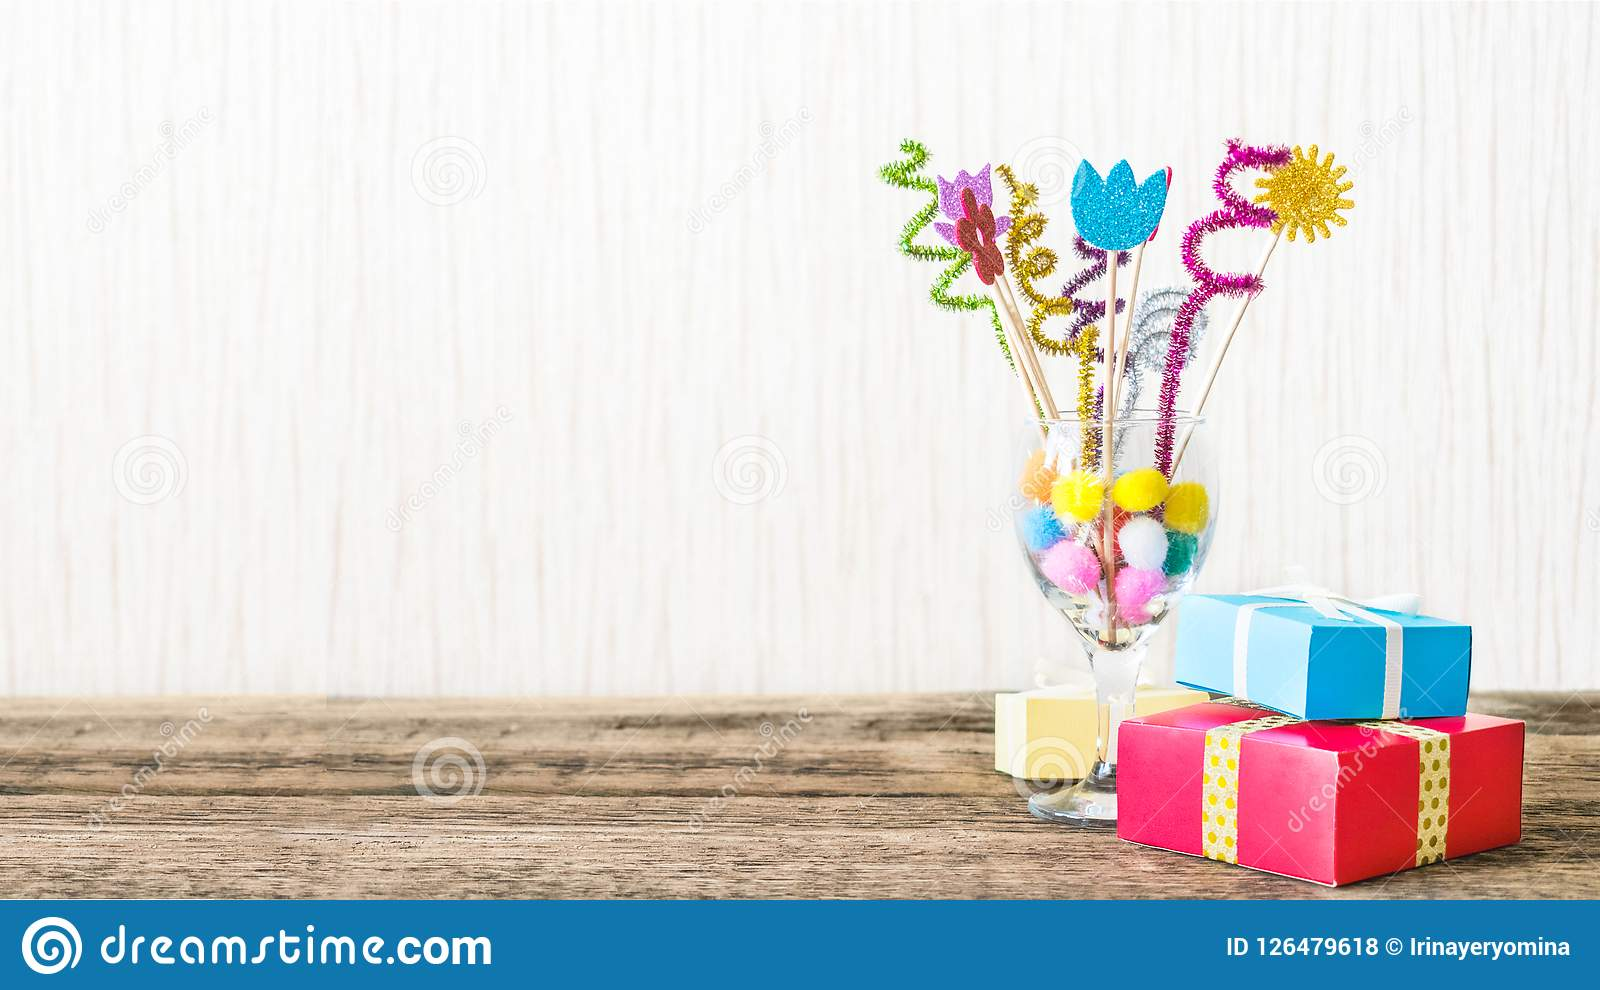 Celebration, Birthday party background with colorful party hat,